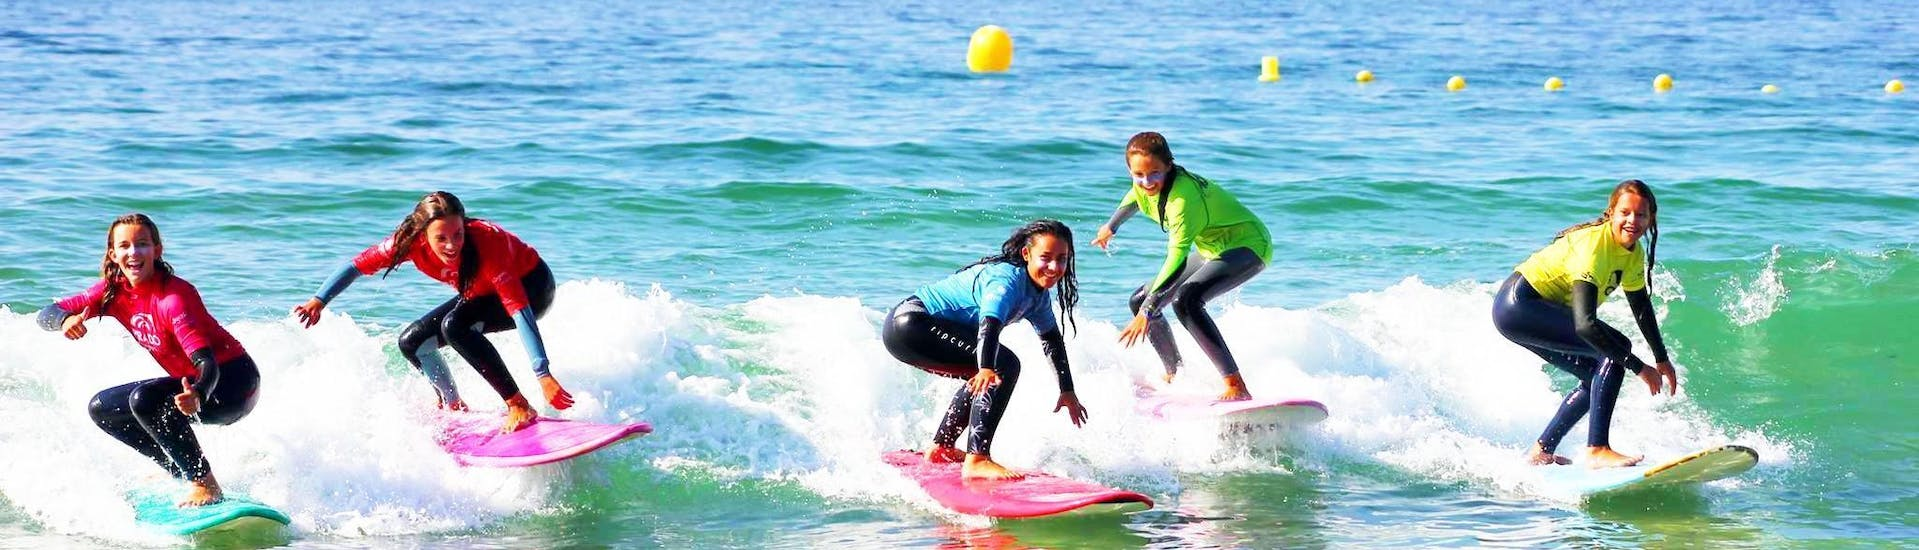 The course participants learn how to surf the sea and have fun with Prado Surf A Lanzada.